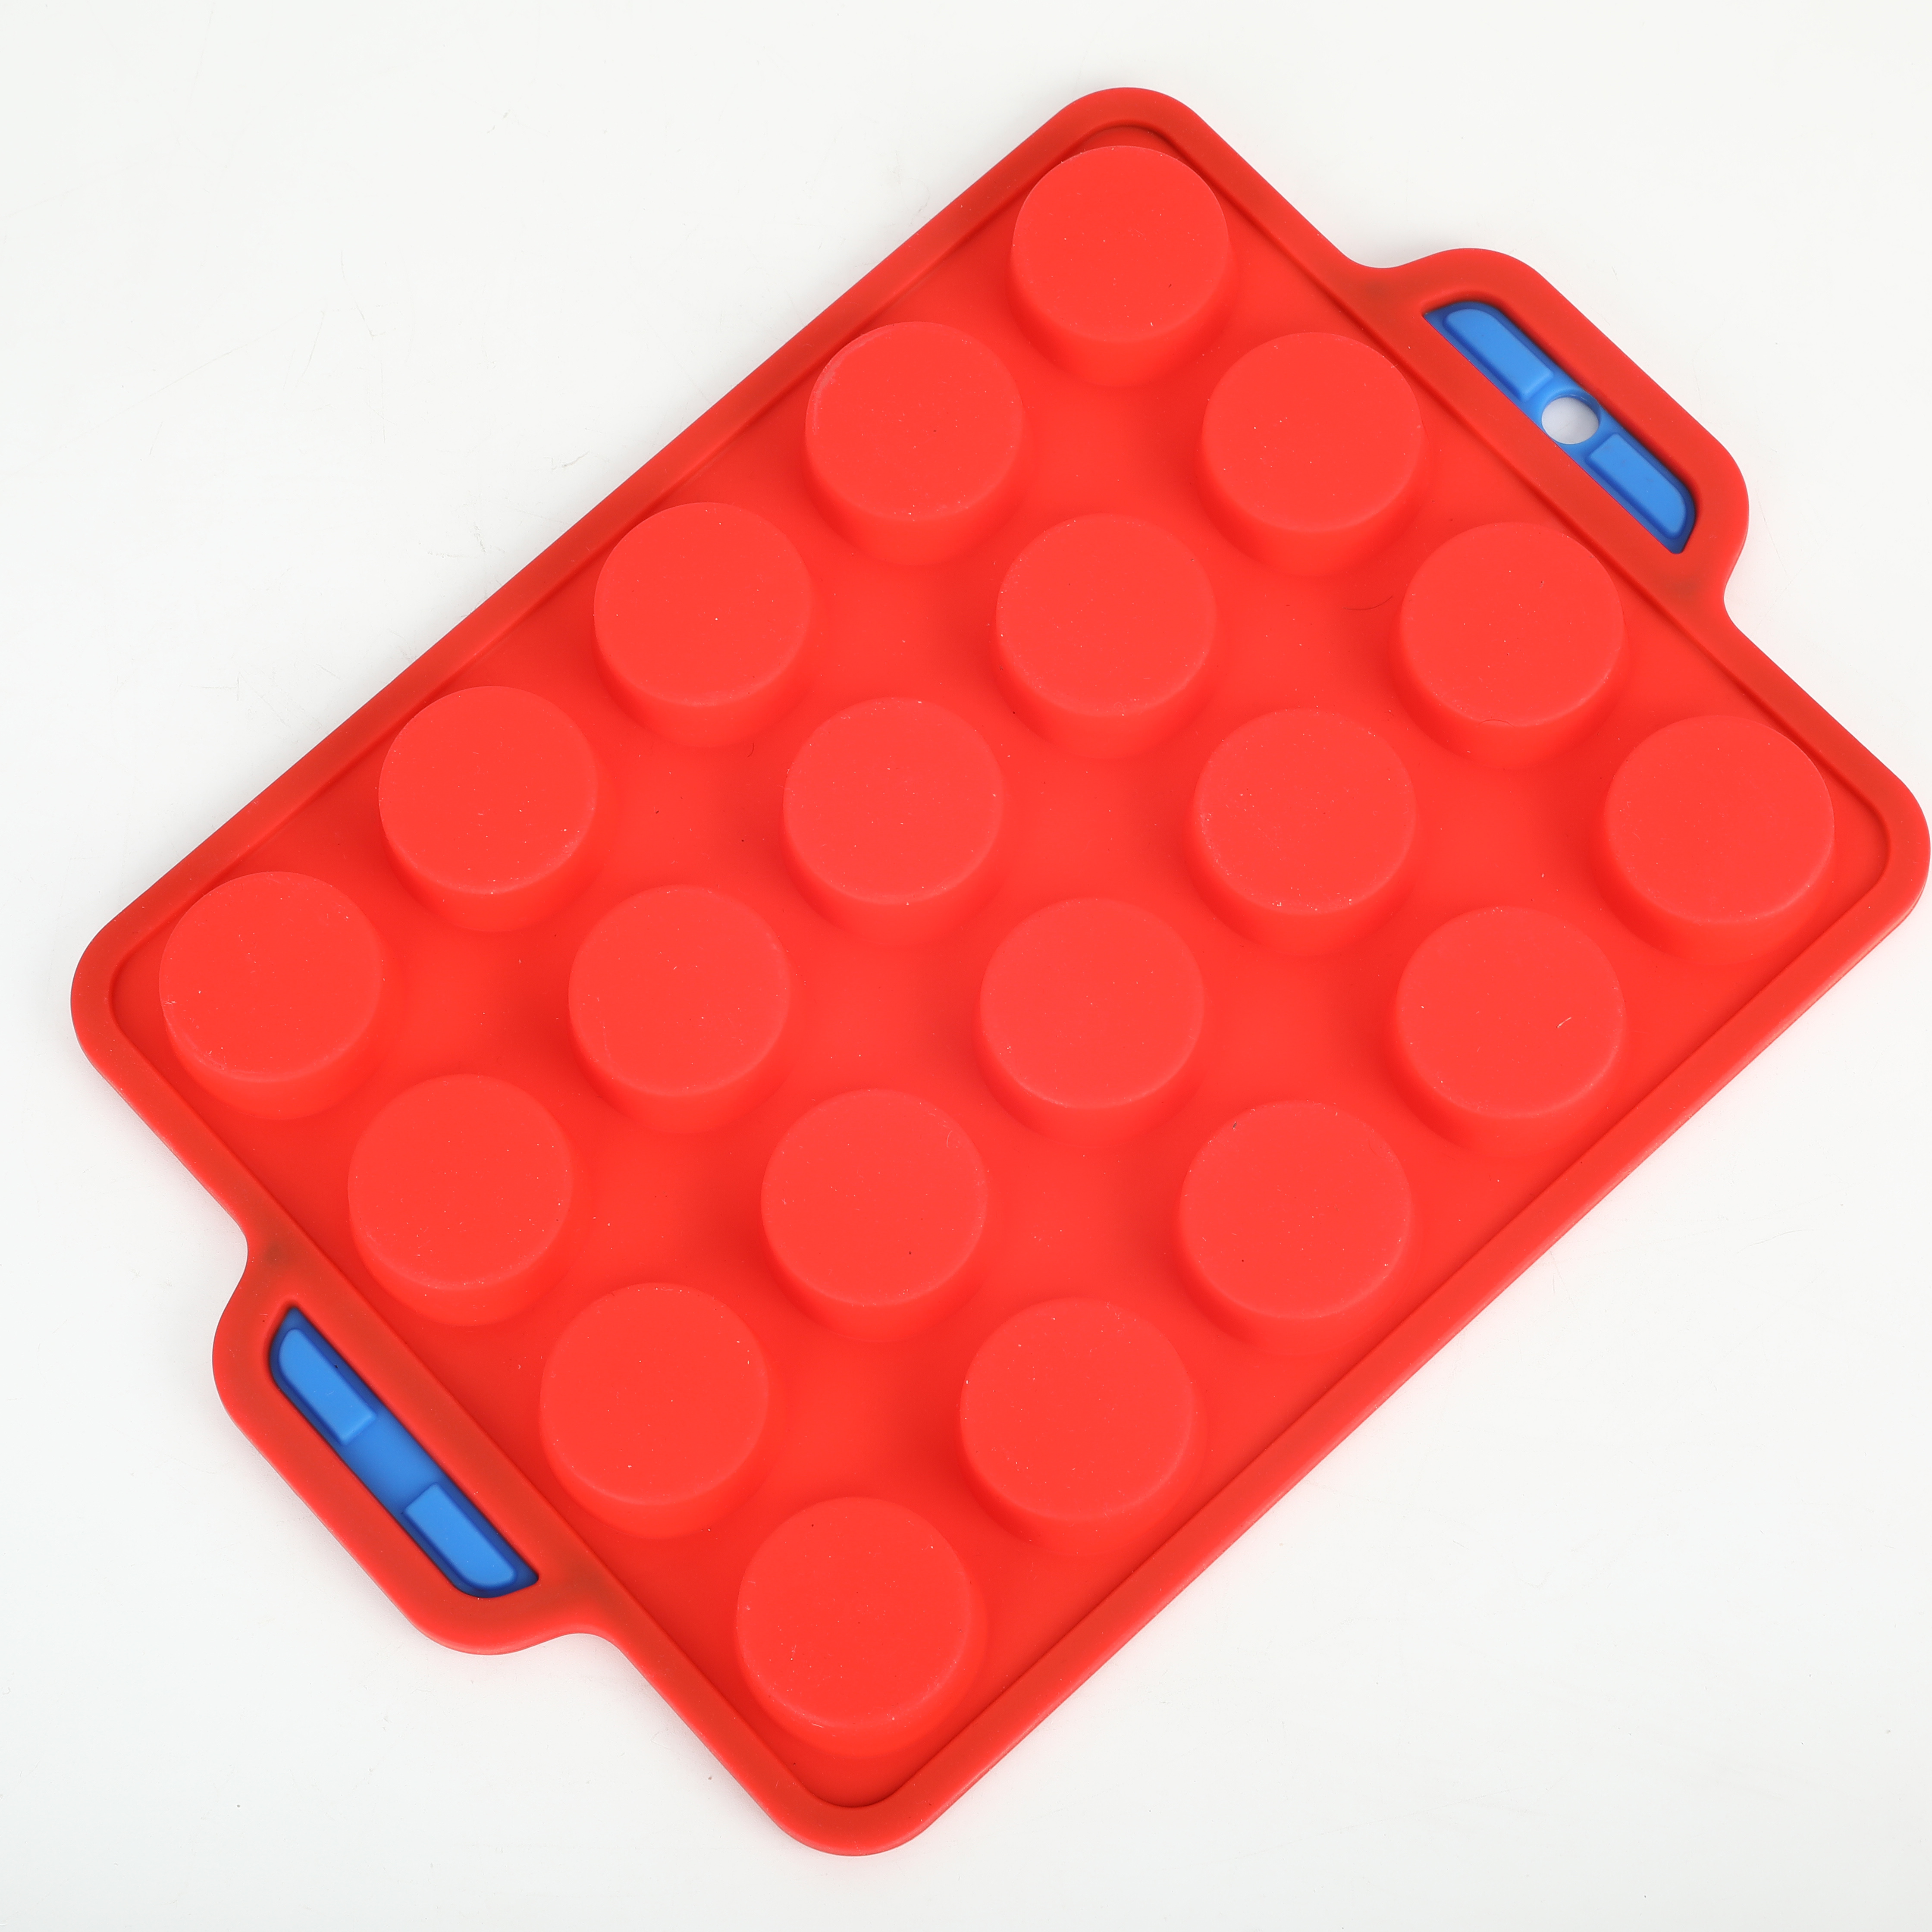 Resistant High Temperature Easy To Clean Domestic Silicone Cake Mold